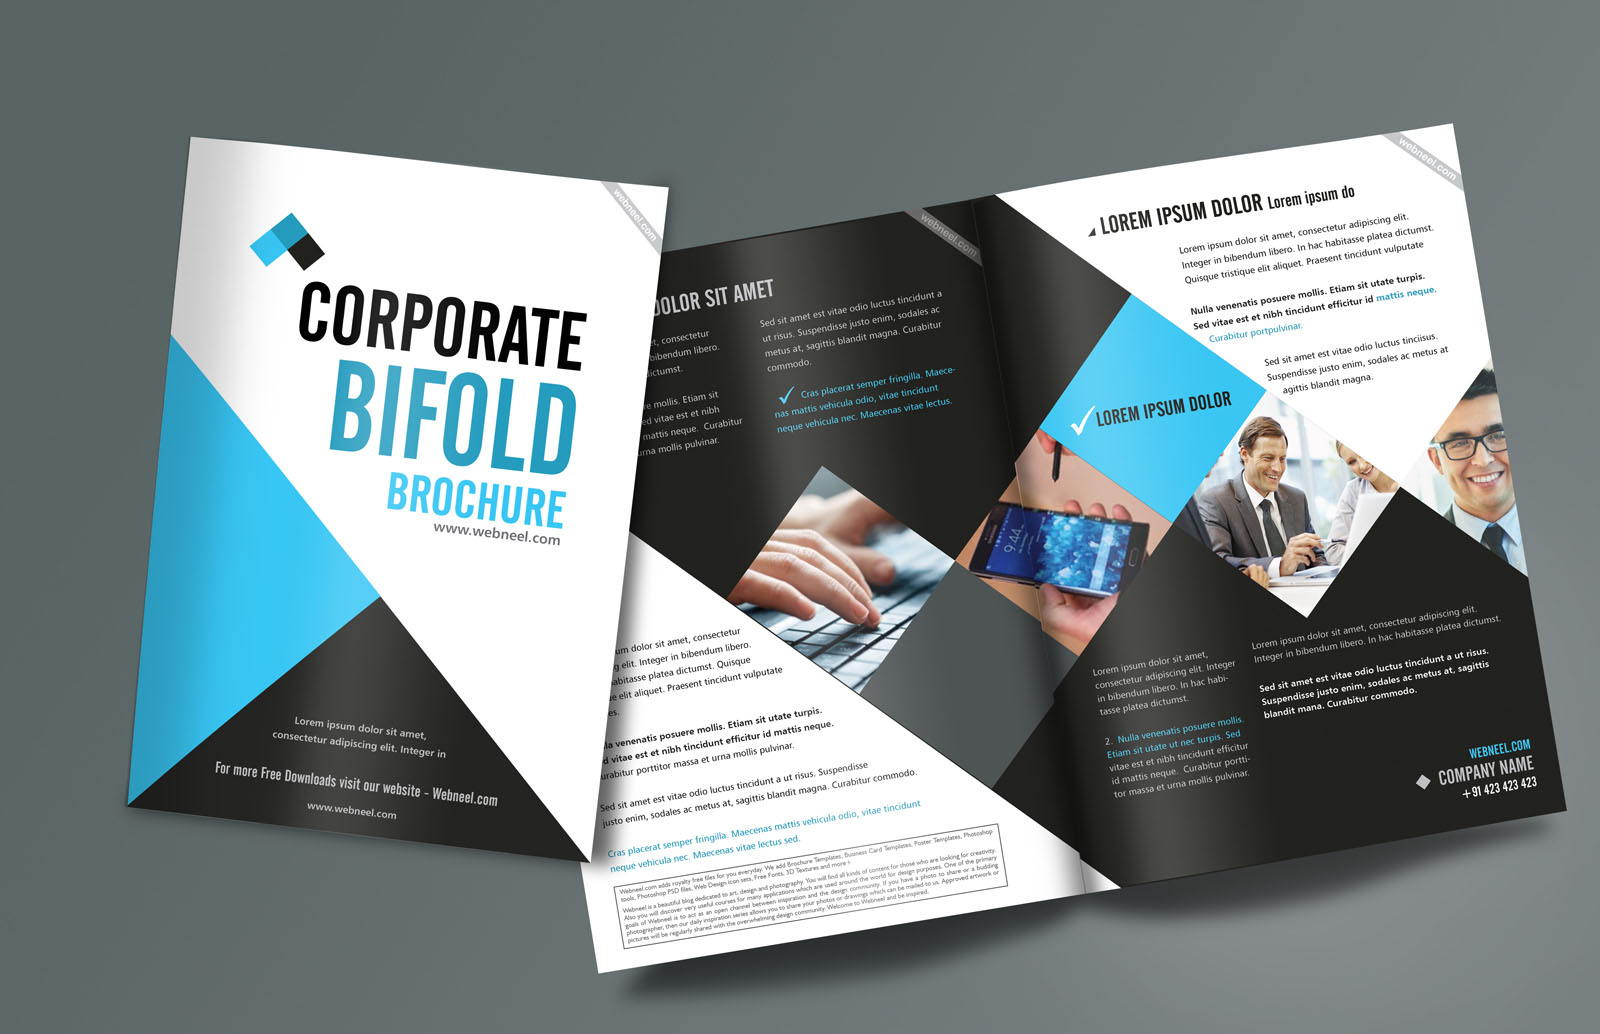 Corporate BiFold Brochure Design Templates Freedownload Printing - Company brochure templates free download